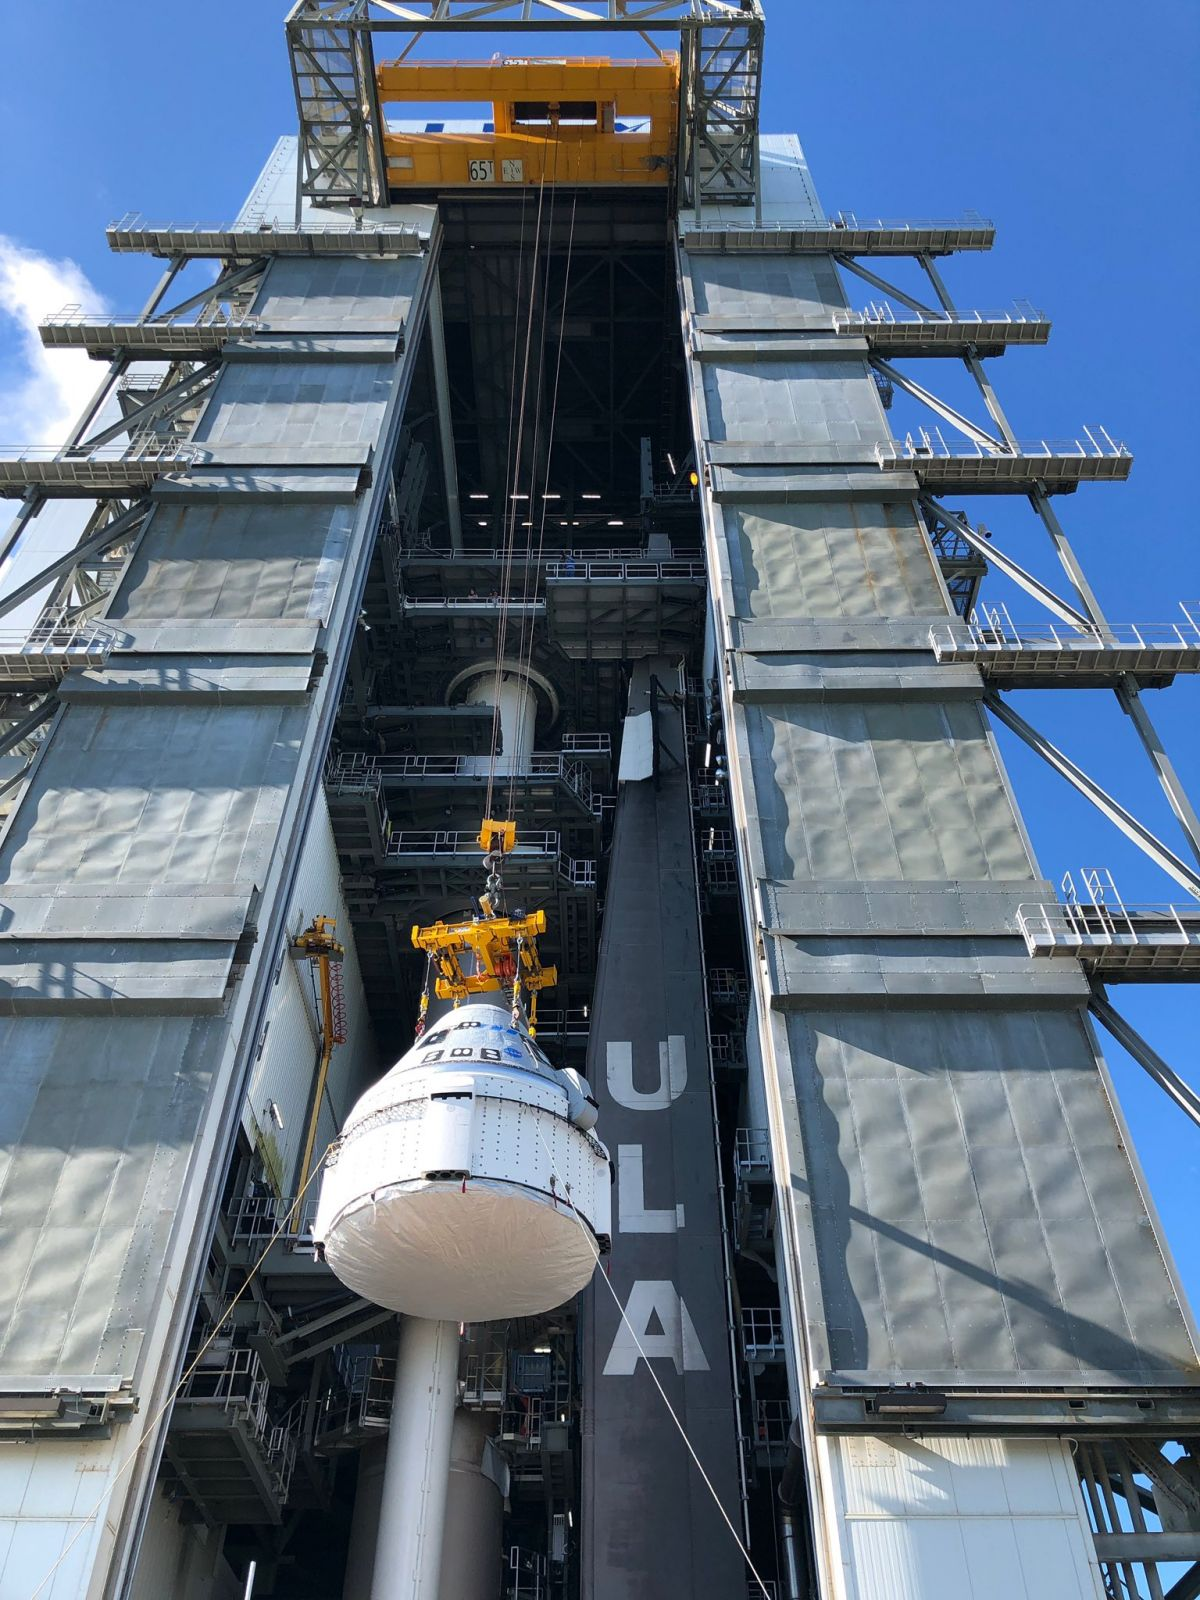 Starliner is hoisted to the top of the Atlas 5 stack to be attached to the rocket in advance of its OFT-2 mission. Credit: ULA